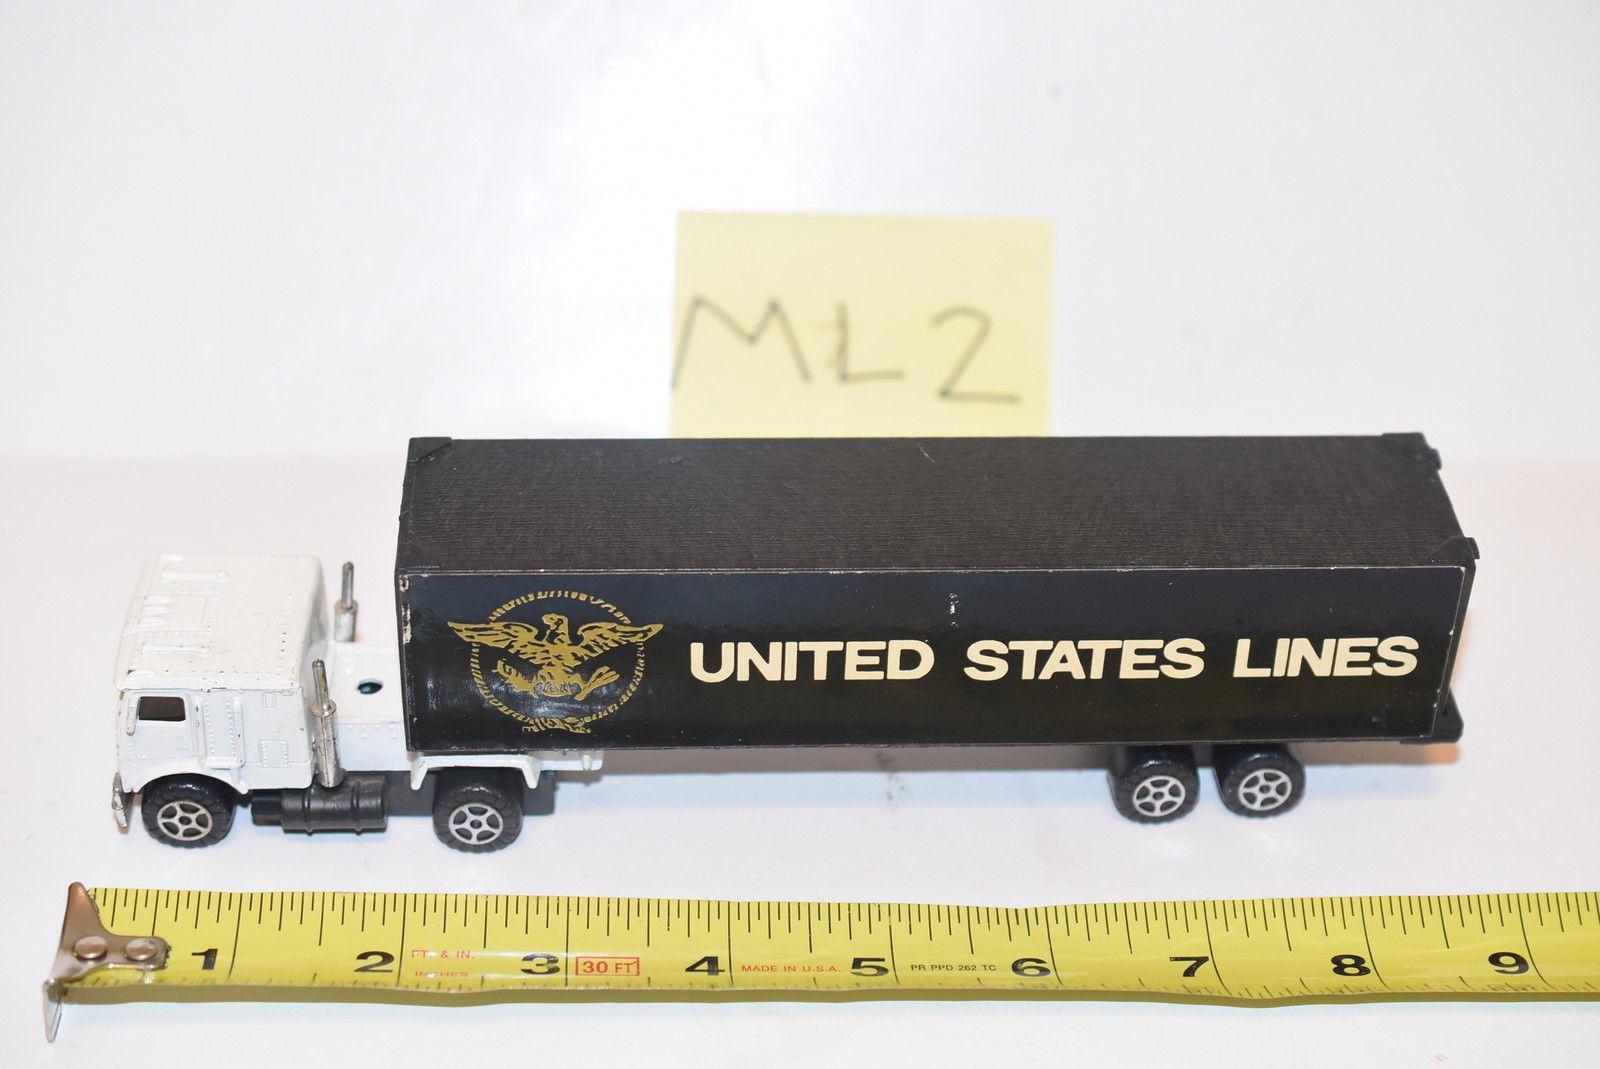 UNITED STATES LINES HAULER ON CHINA BASE - LOOSE